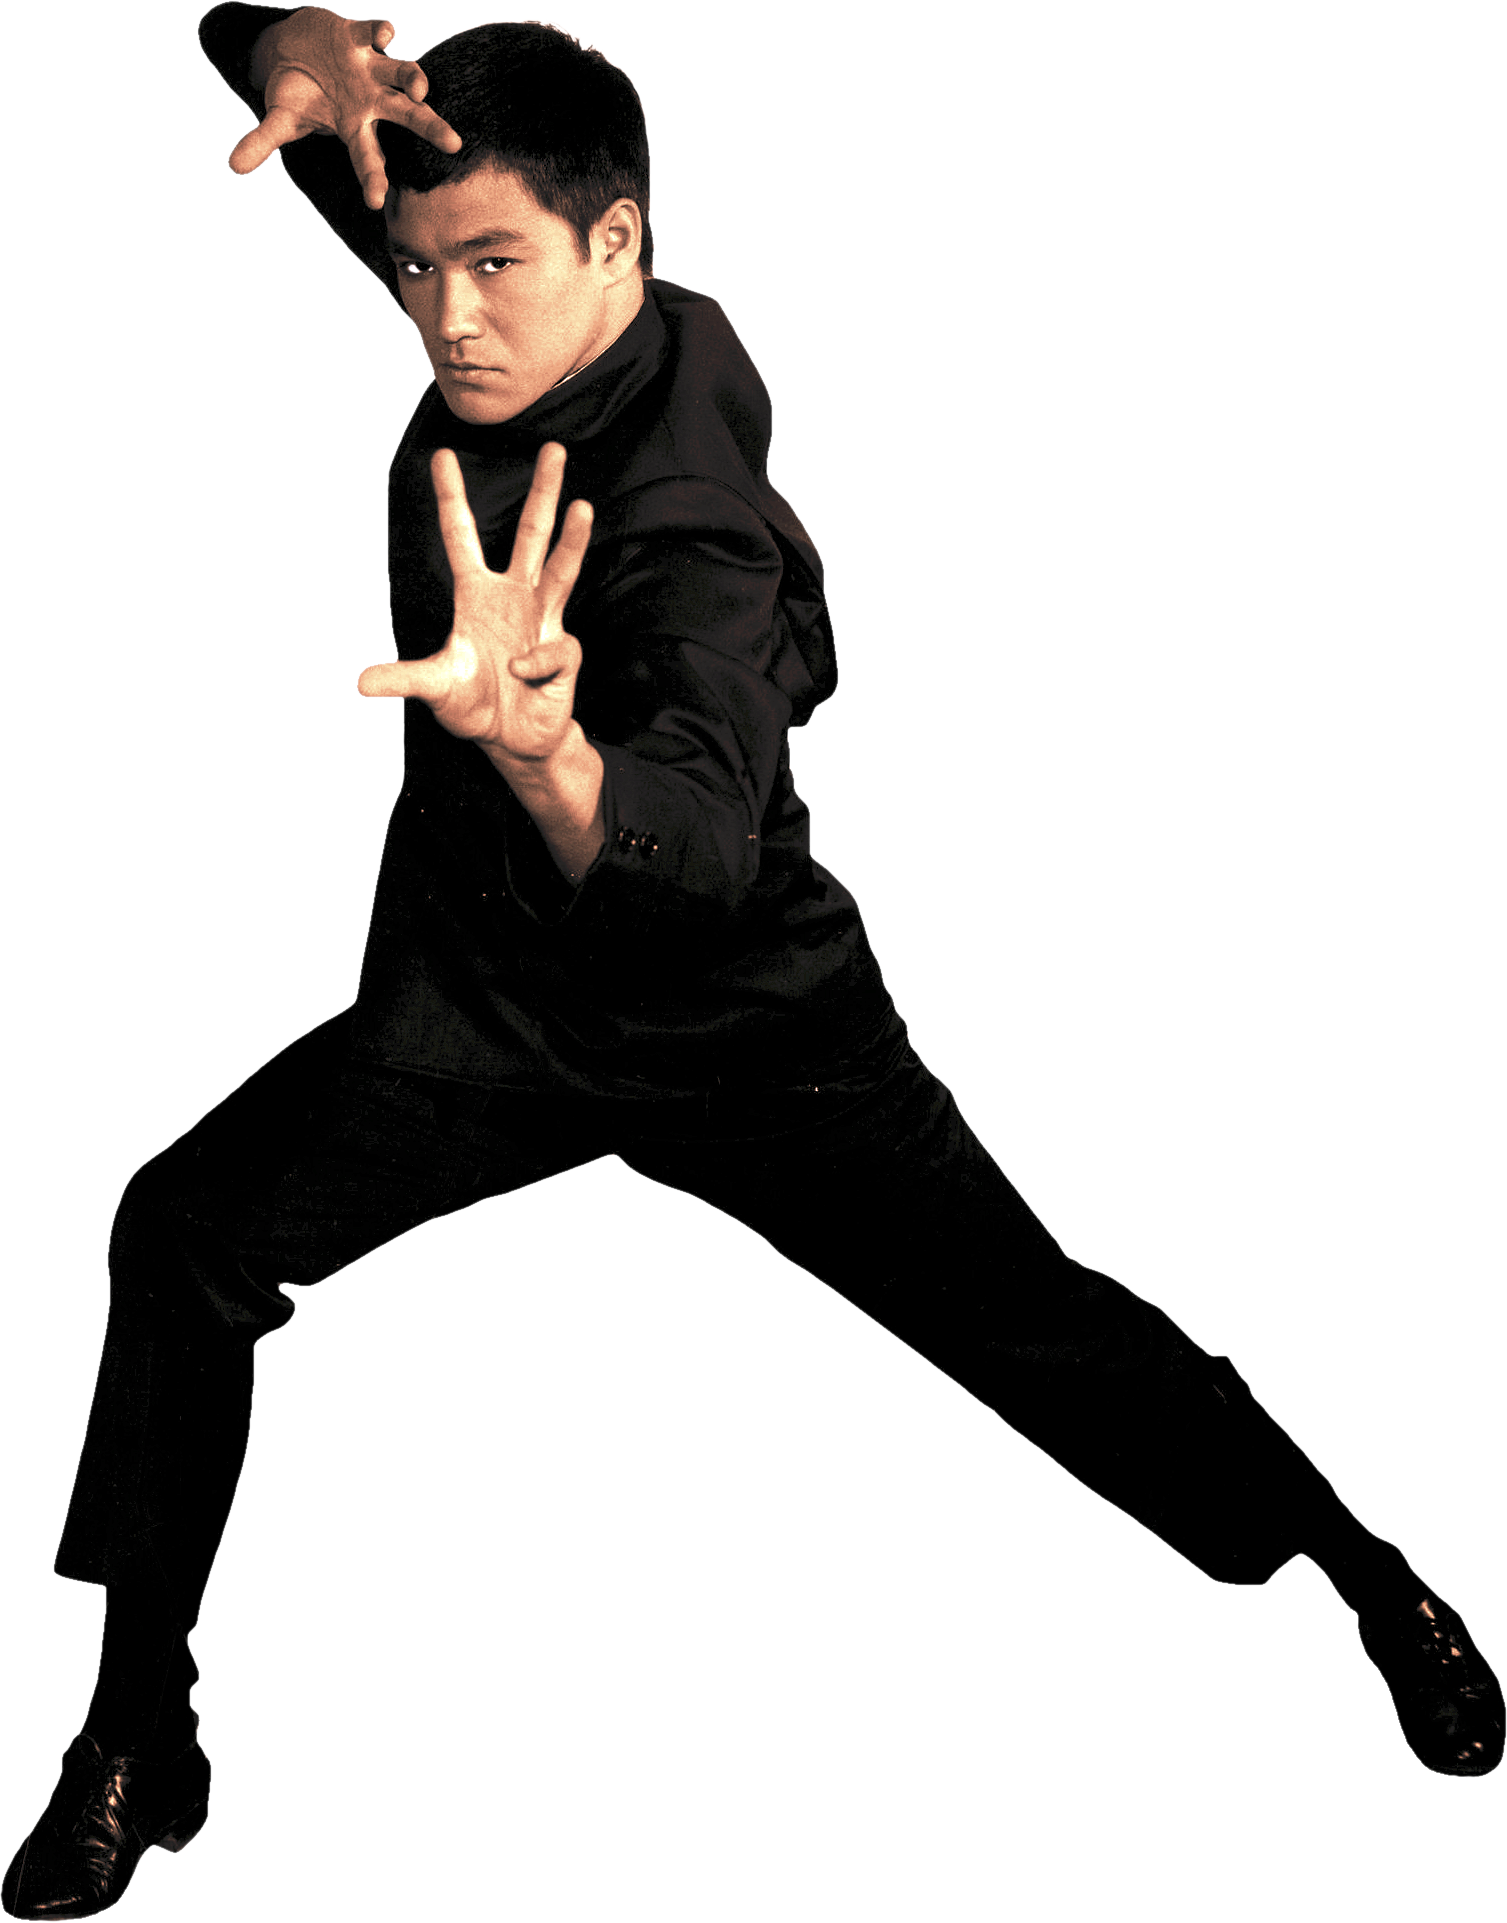 PNG File Name: Bruce Lee Transparent PNG - Bruce Lee PNG